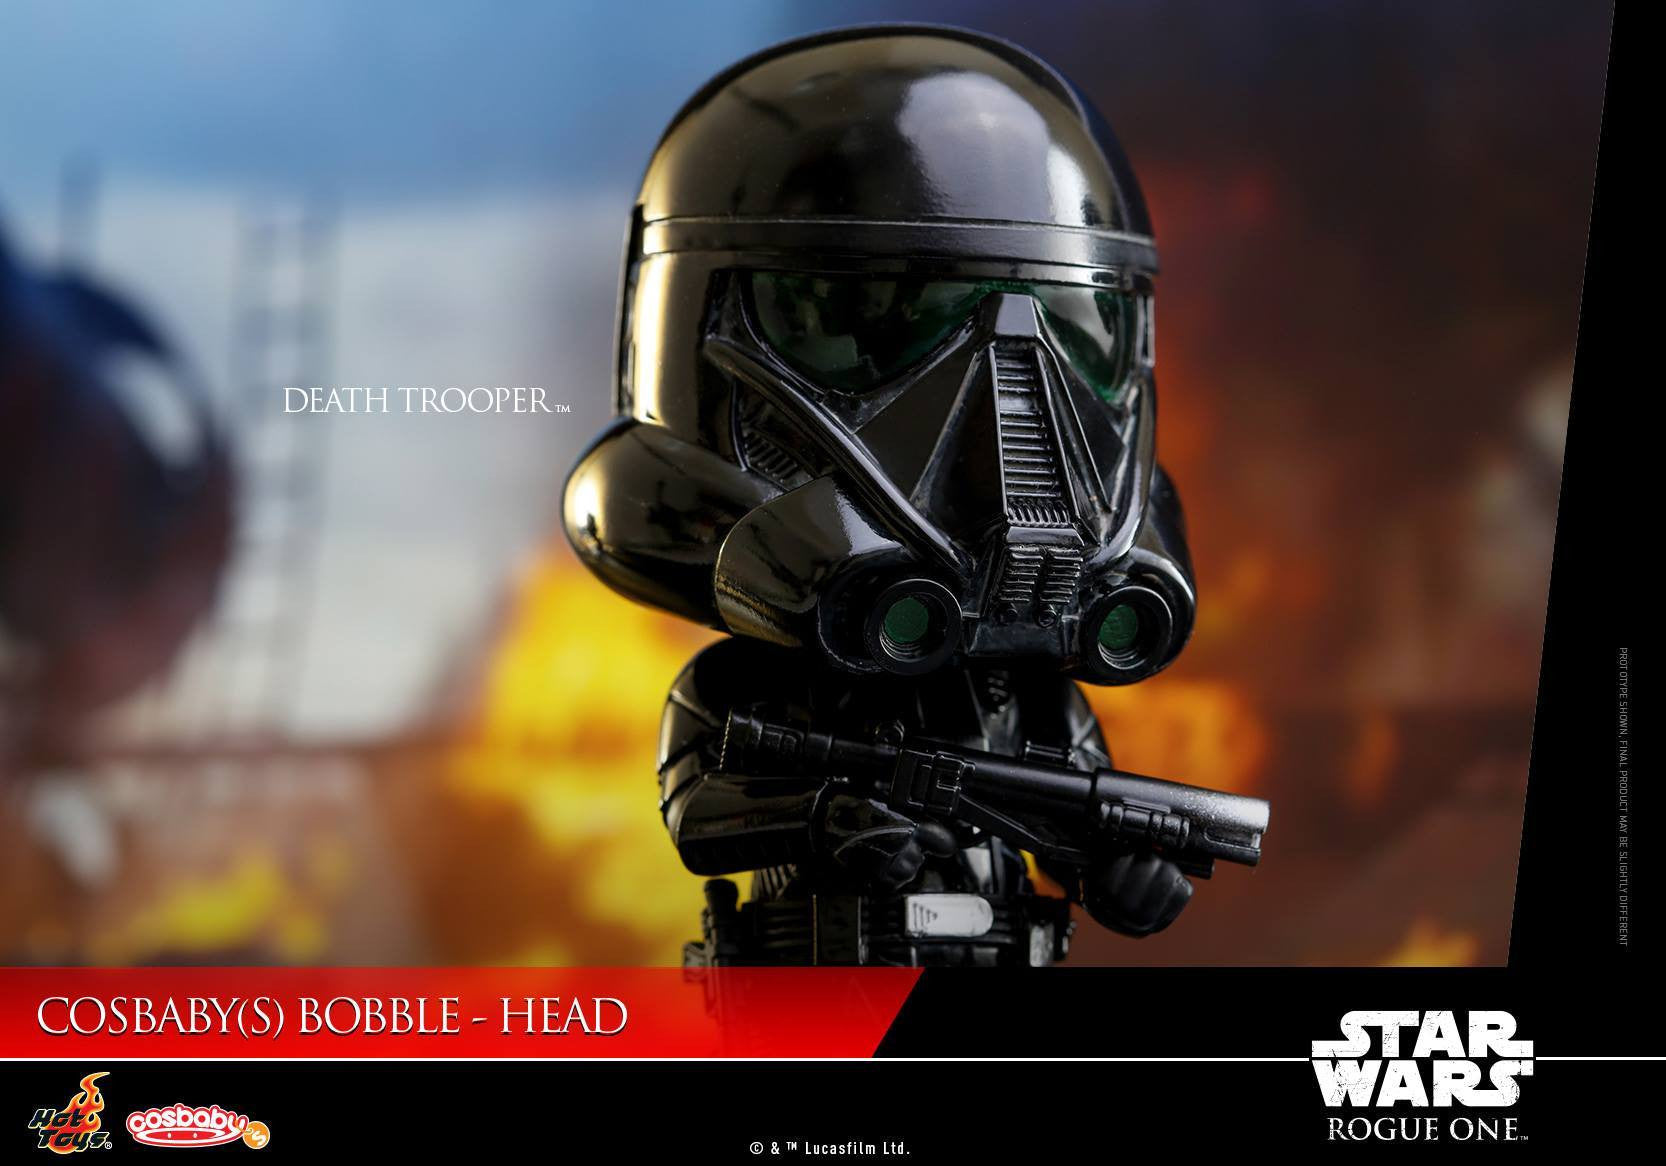 (IN STOCK) Hot Toys - COSB335 - Rogue One: A Star Wars Story - Cosbaby Bobble-Head (Series 1) Set of 6 - Marvelous Toys - 3